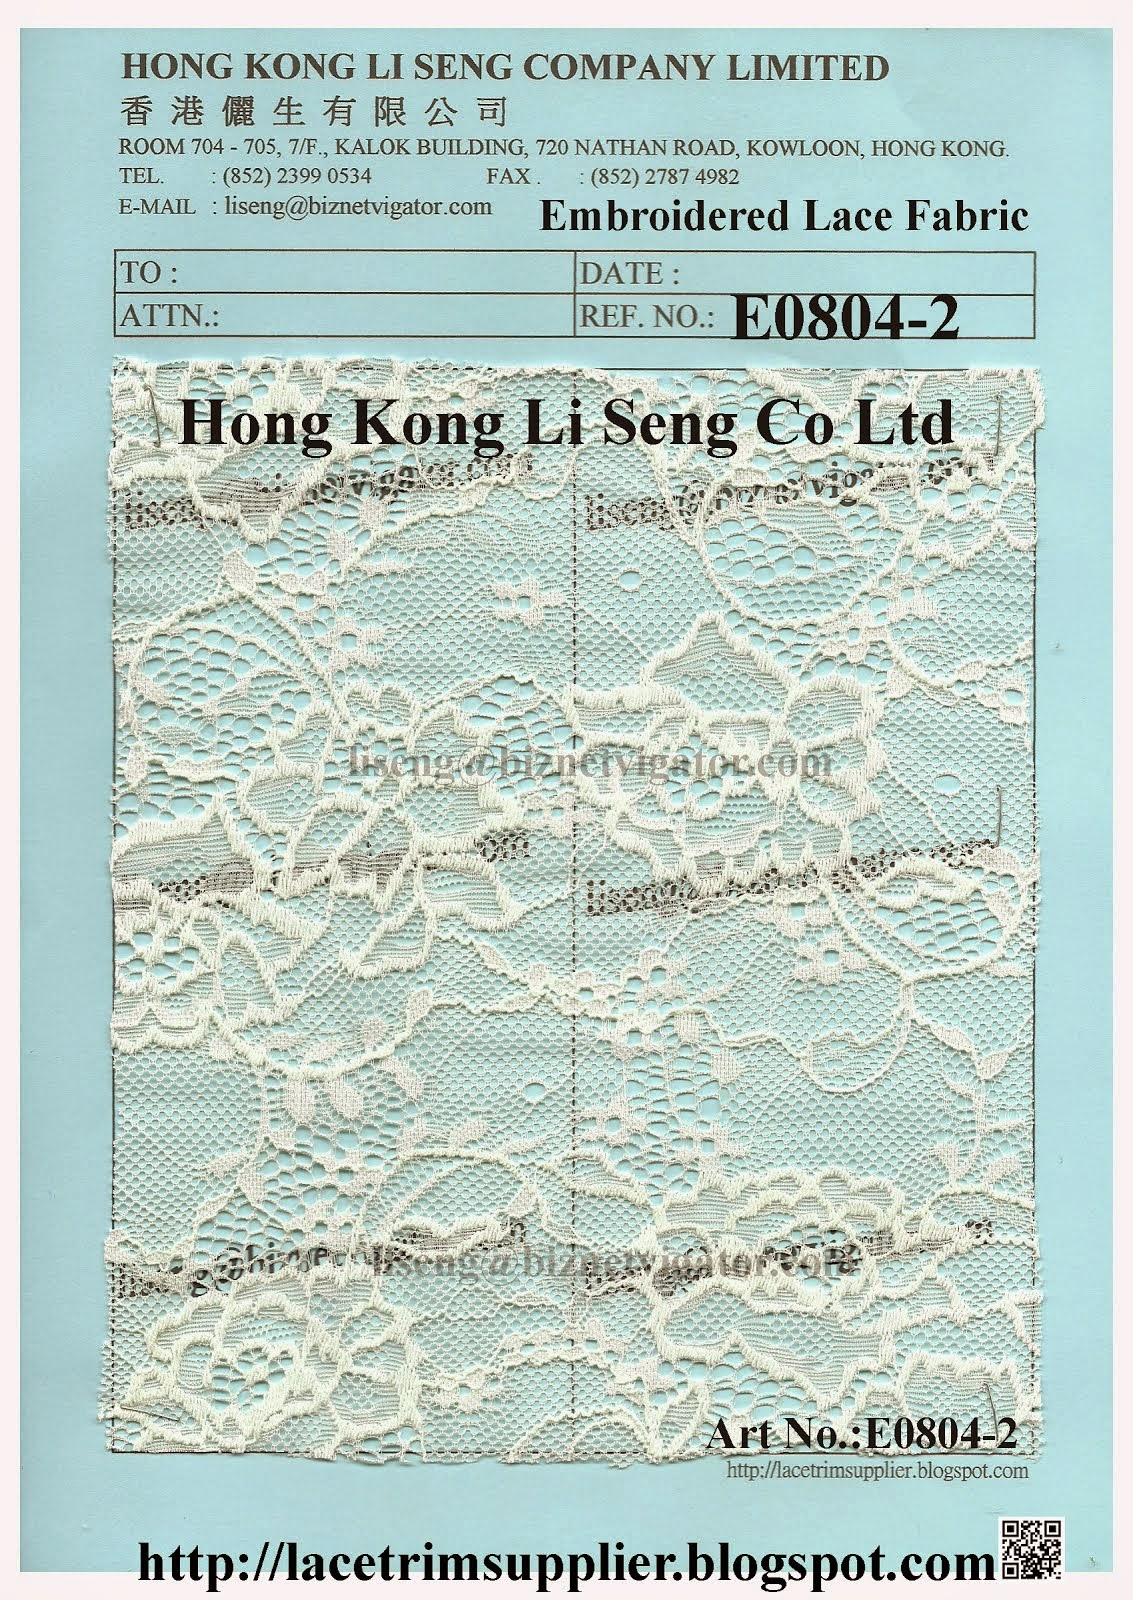 Wholesale Apparel Lace Fabric Manufacturer Supplier - Hong Kong Li Seng Co Ltd